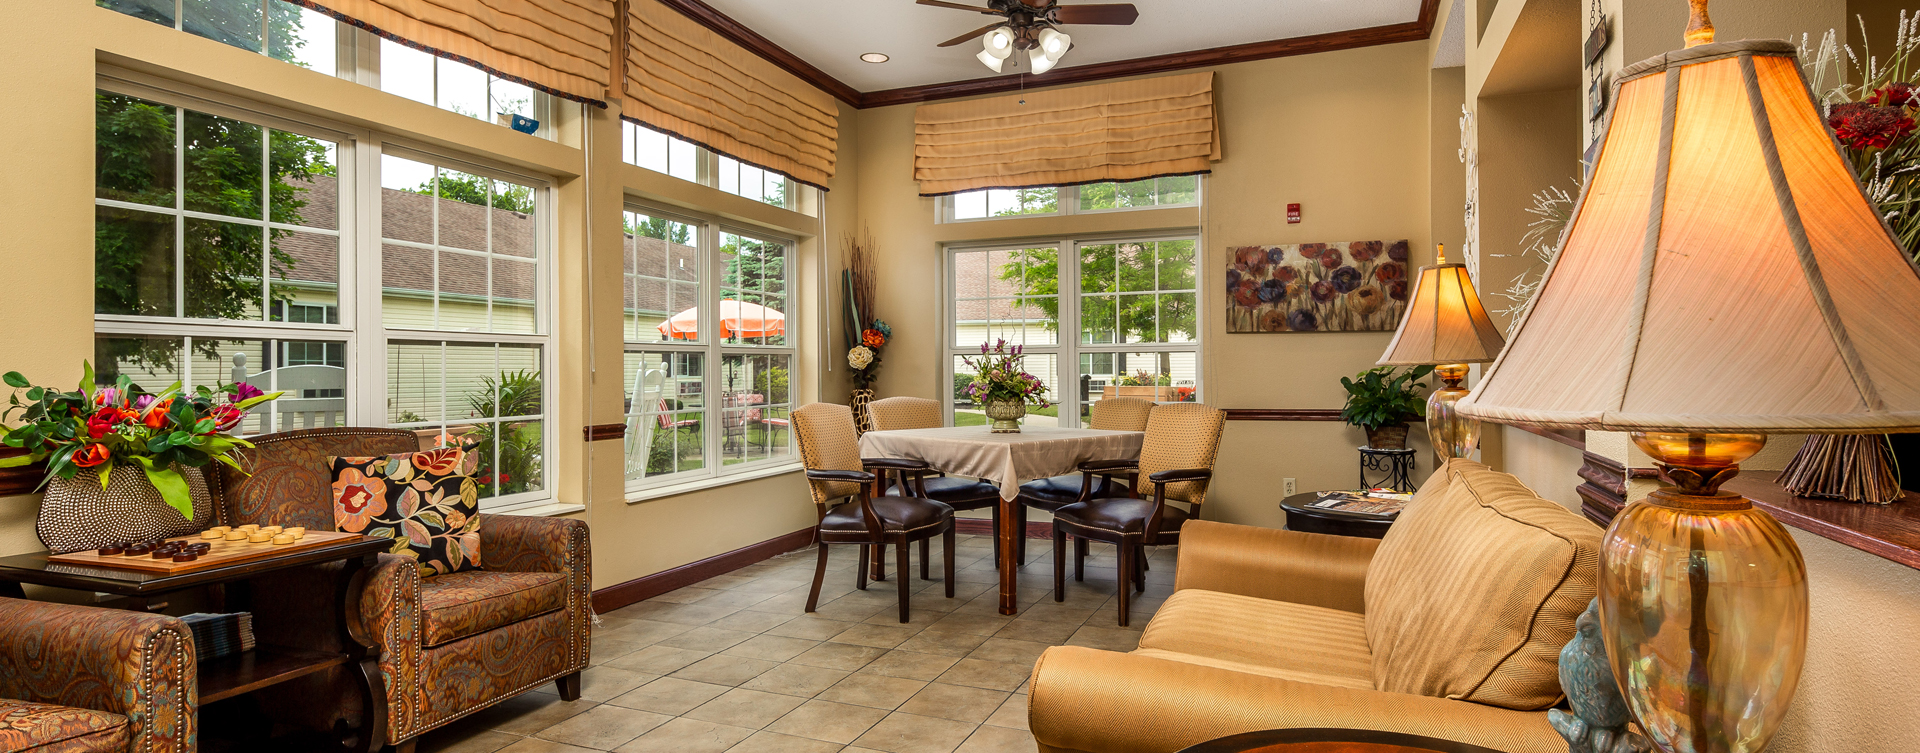 Enjoy the view of the outdoors from the sunroom at Bickford of Battle Creek